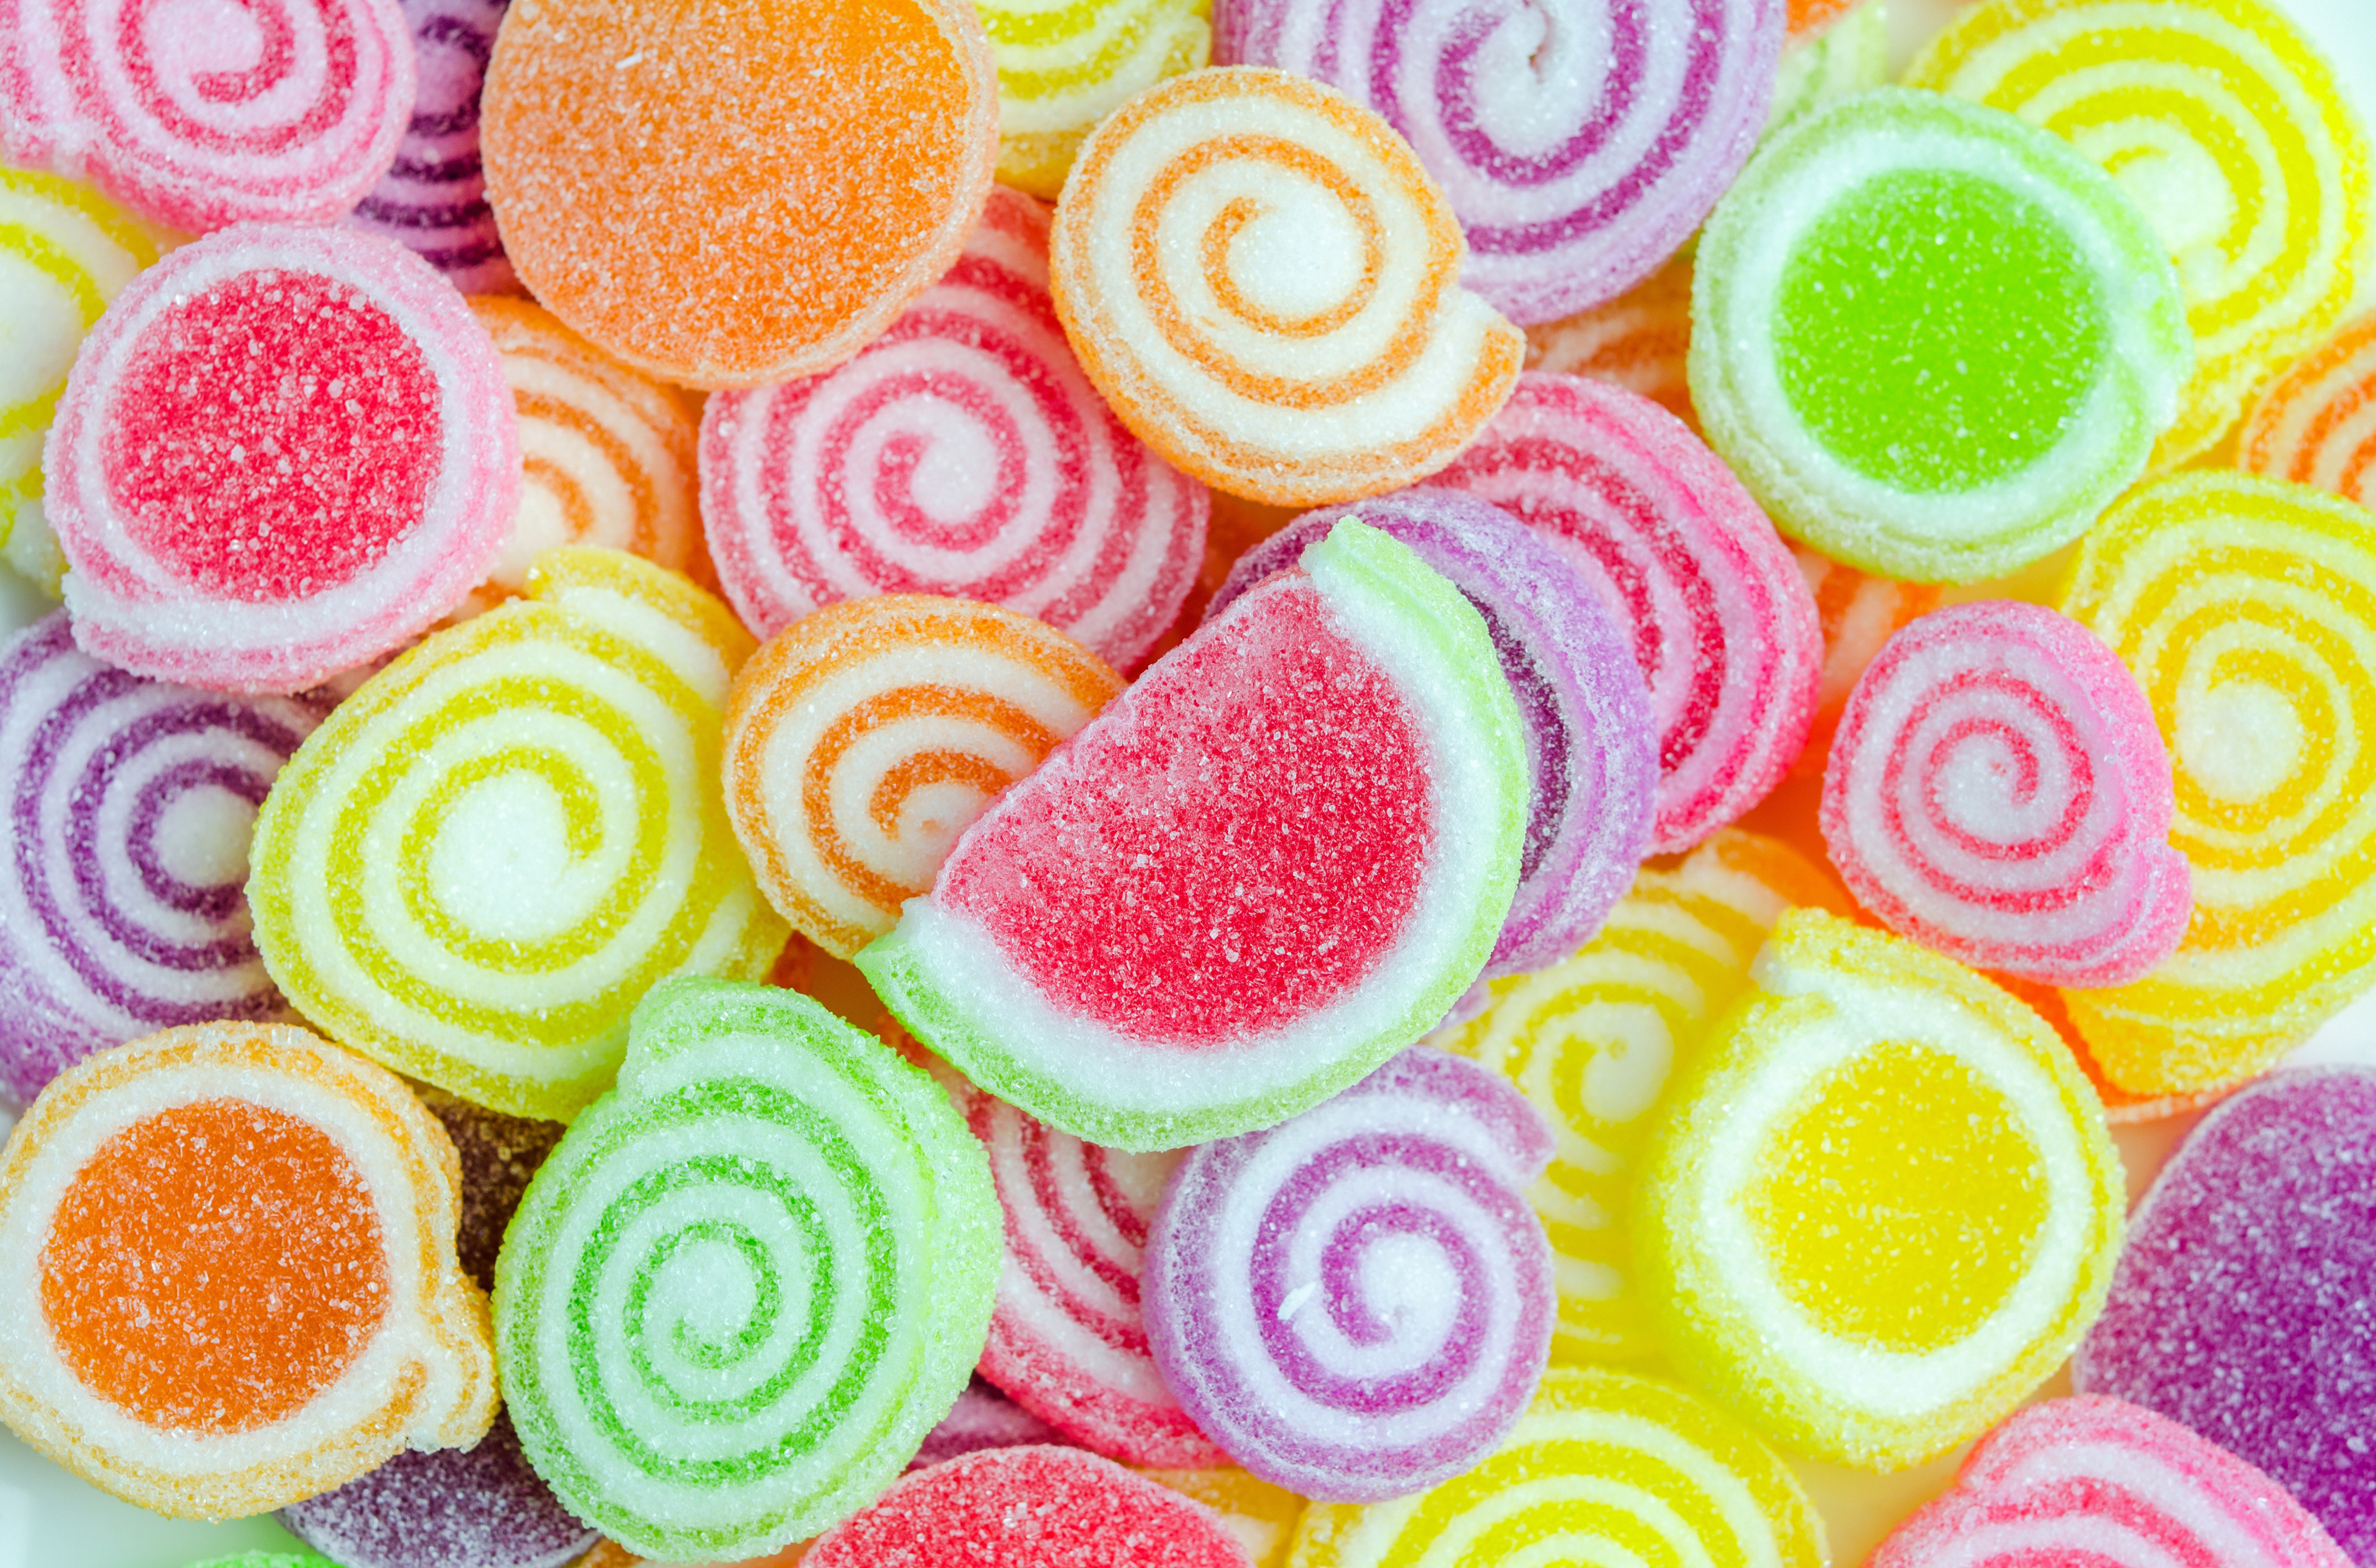 candy 4k ultra hd wallpaper  background image  4000x2640